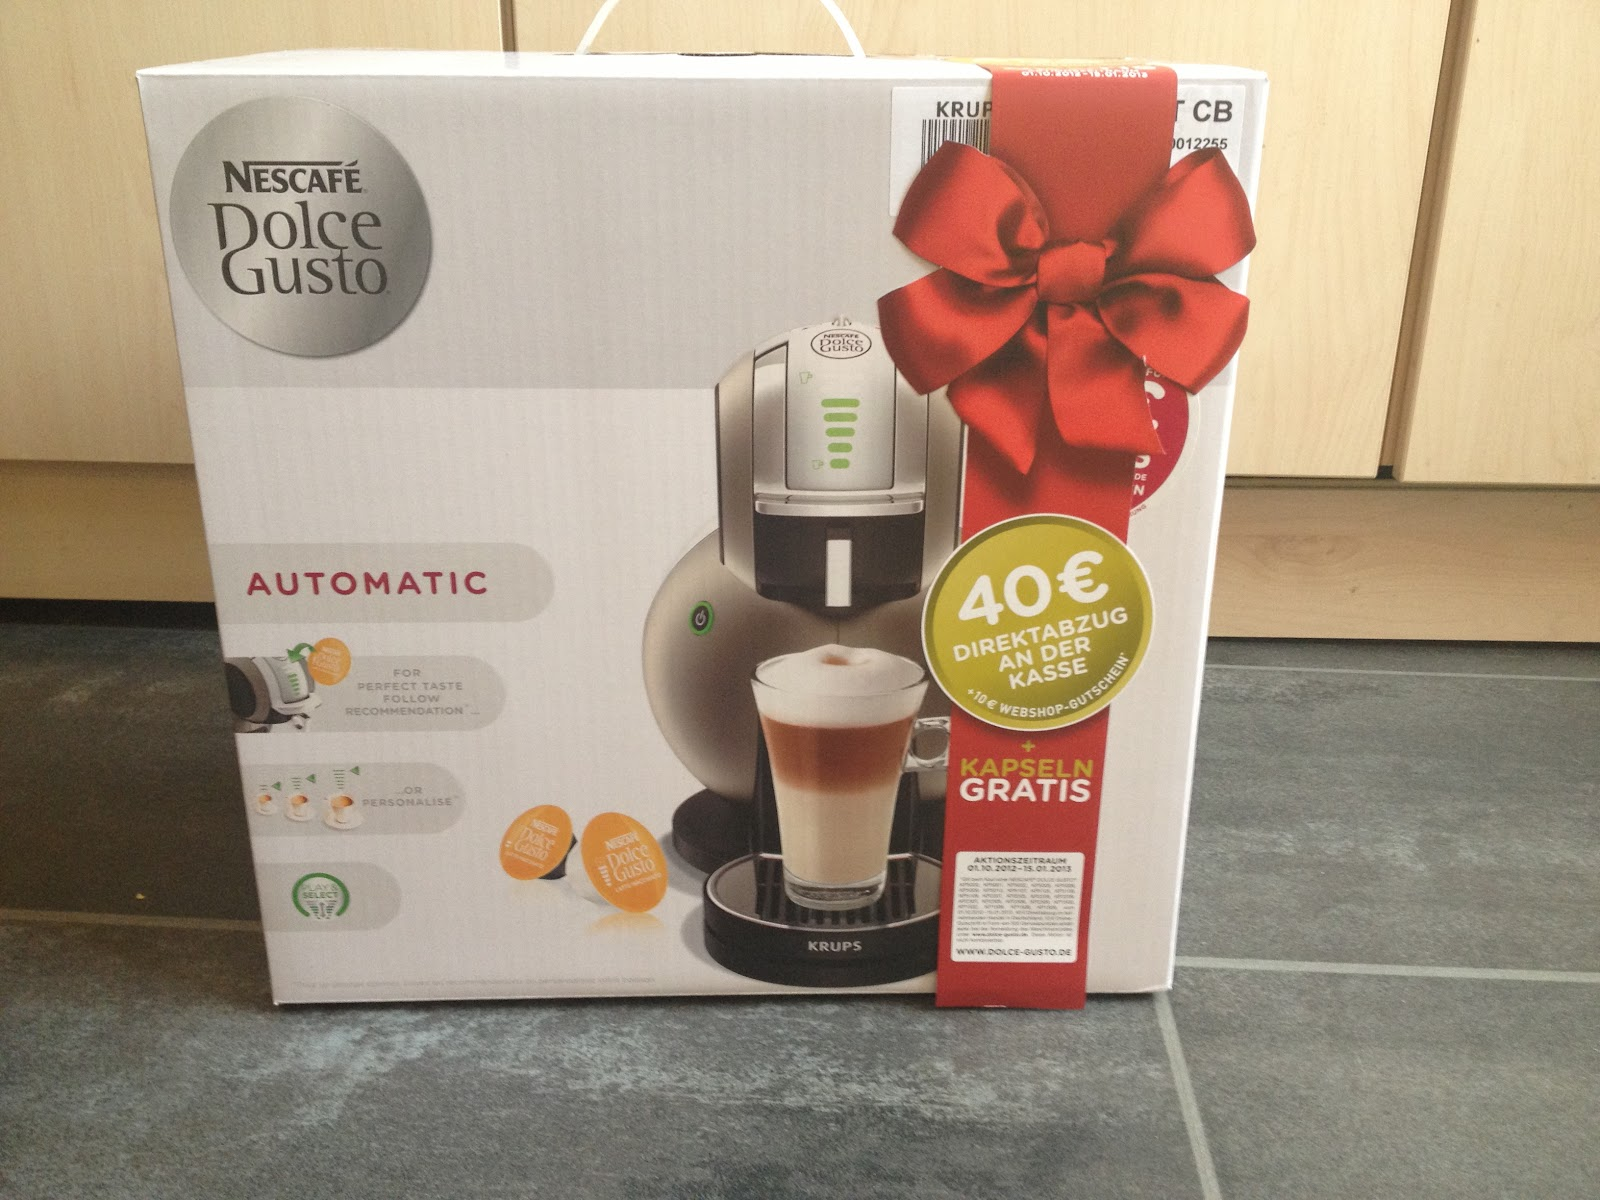 testaktion dolce gusto melody 3 automatic es geht los. Black Bedroom Furniture Sets. Home Design Ideas